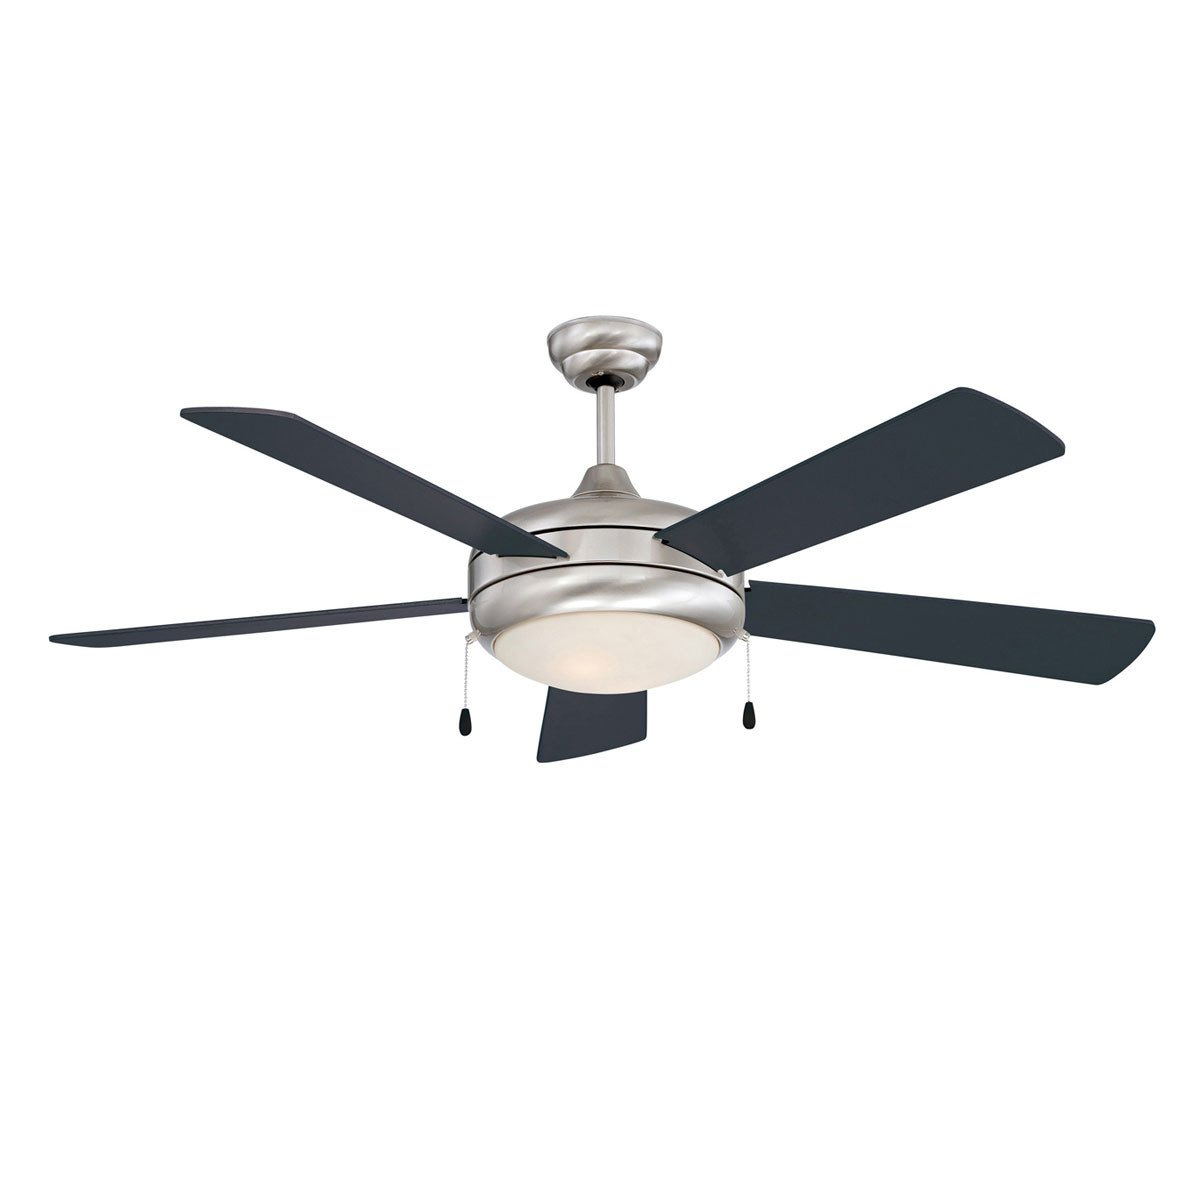 "Concord Fans 52"" Saturn-Ex Stainless Steel Modern Ceiling Fan with Light"